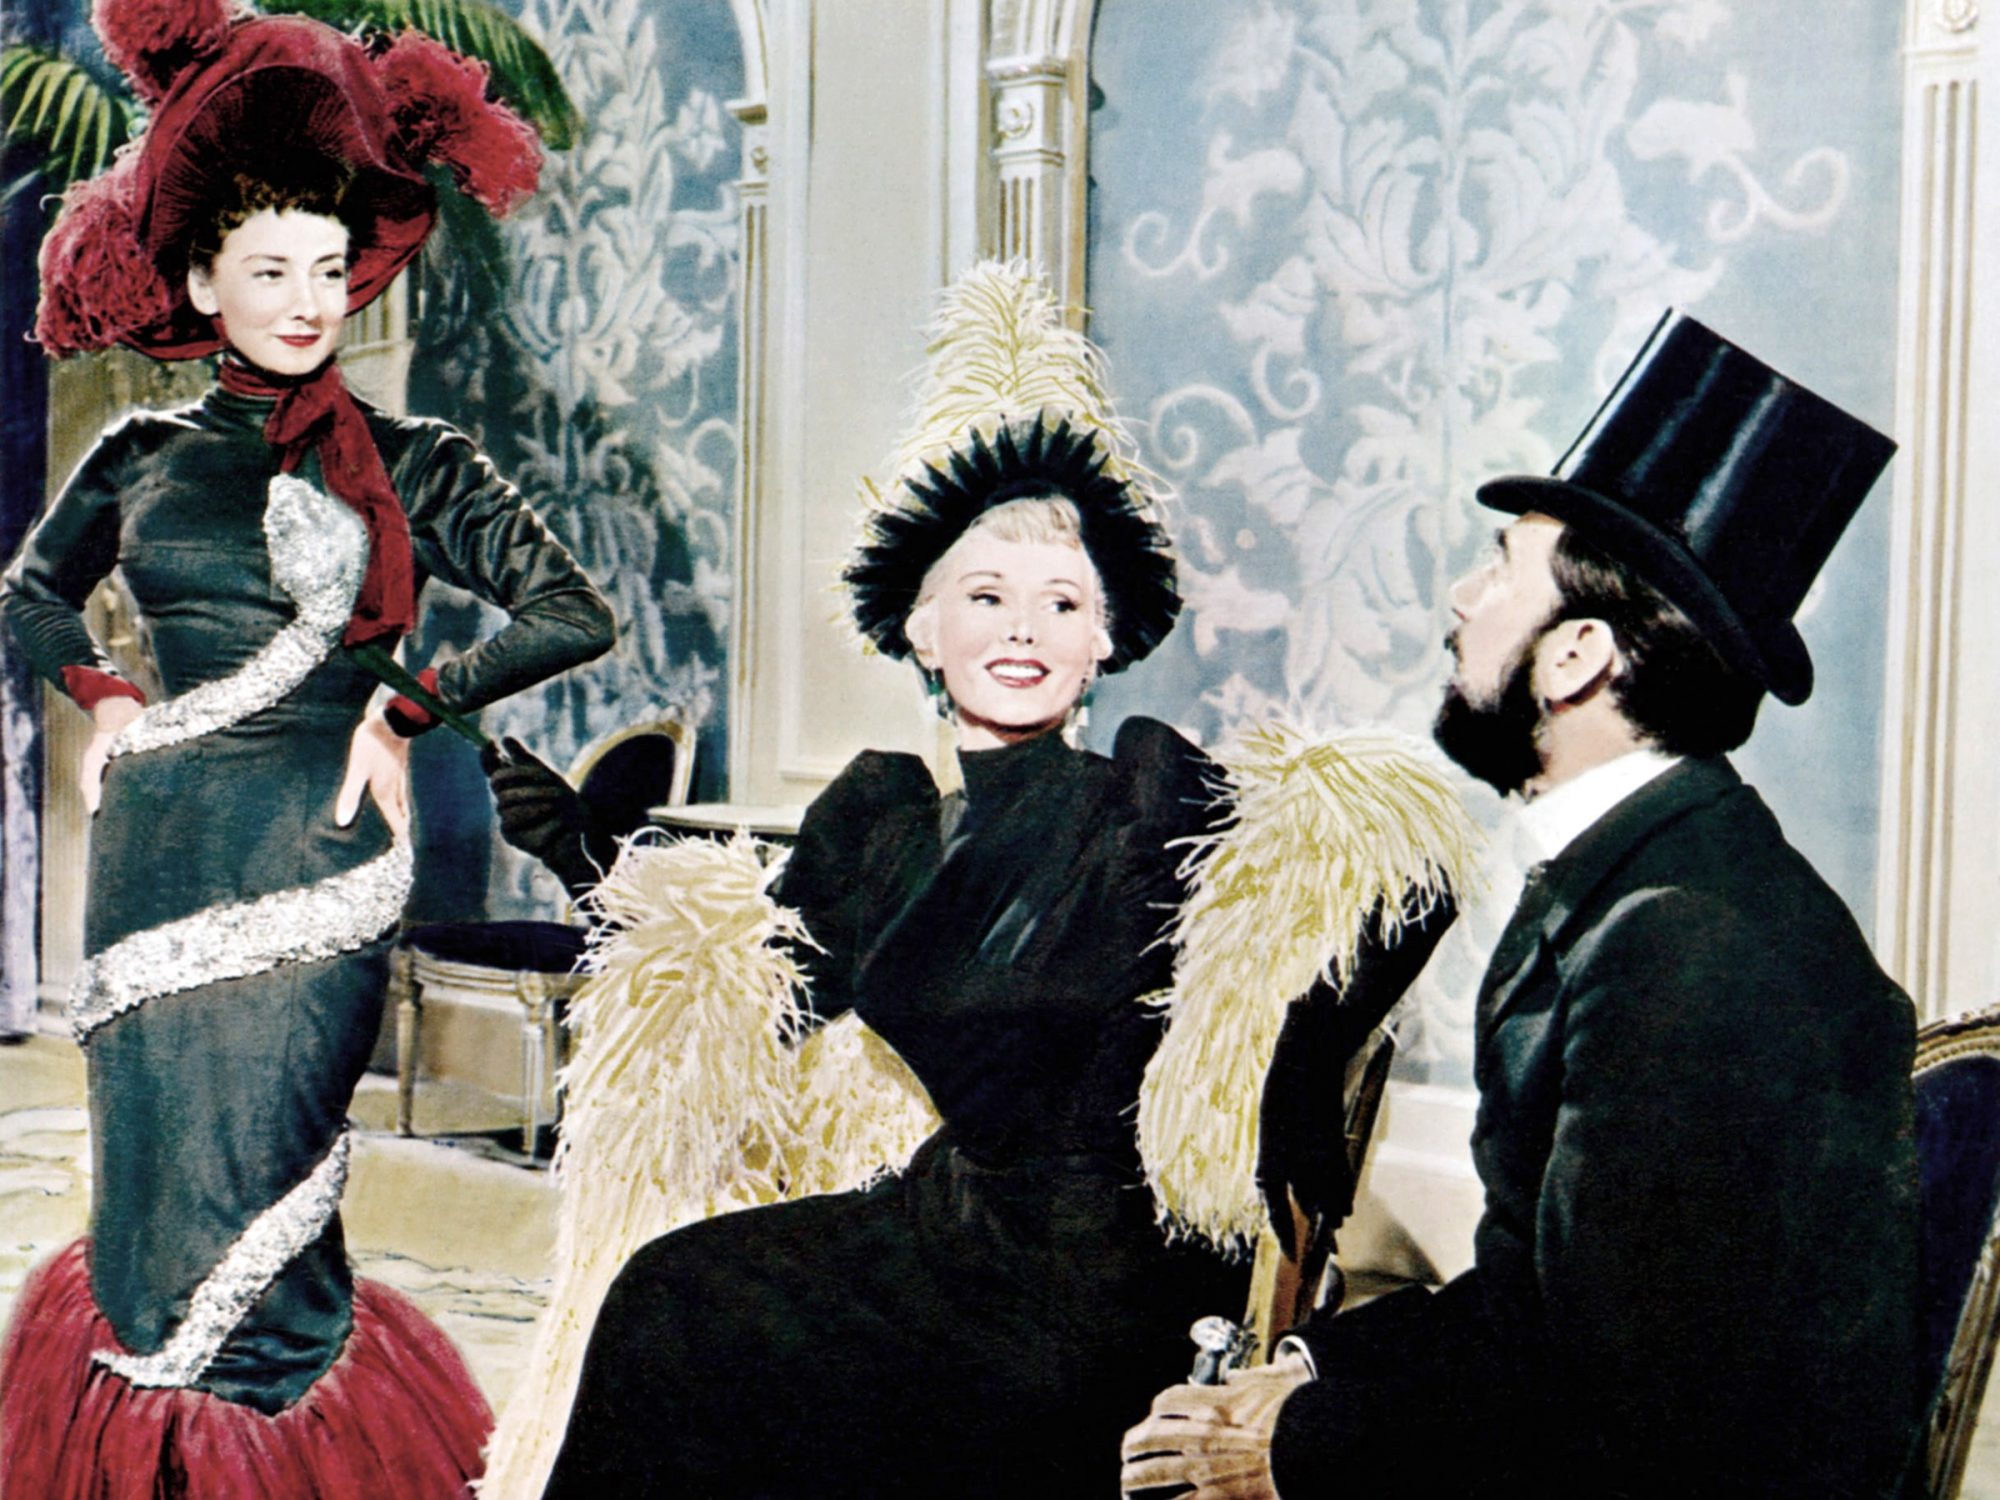 MOULIN ROUGE, from left: Suzanne Flon, Zsa Zsa Gabor, Jose Ferrer, 1952